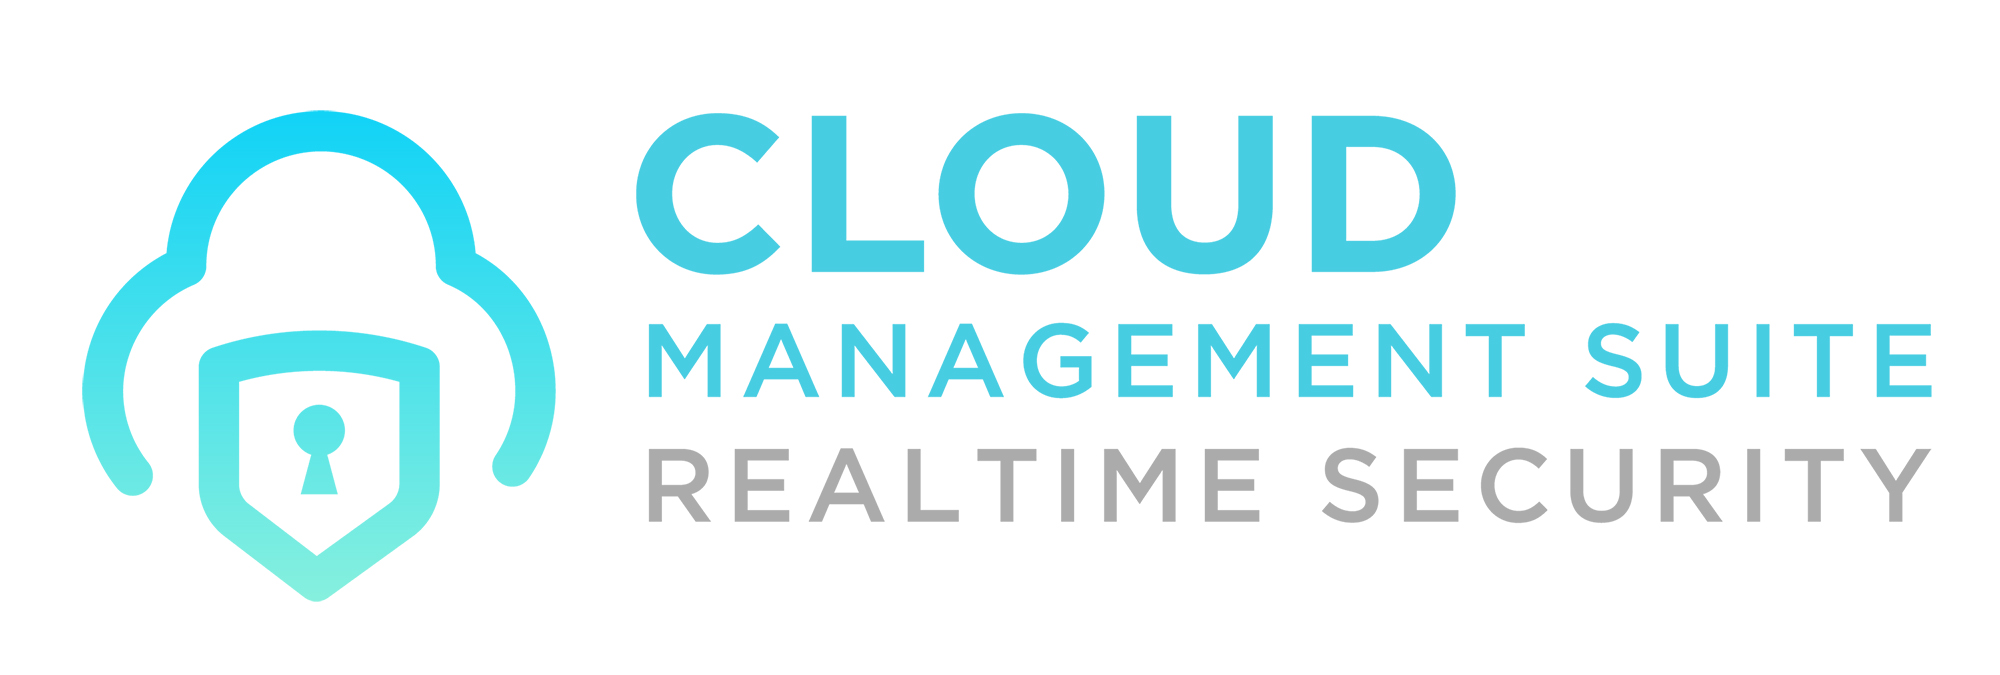 Cloud Management Suite Realtime Security